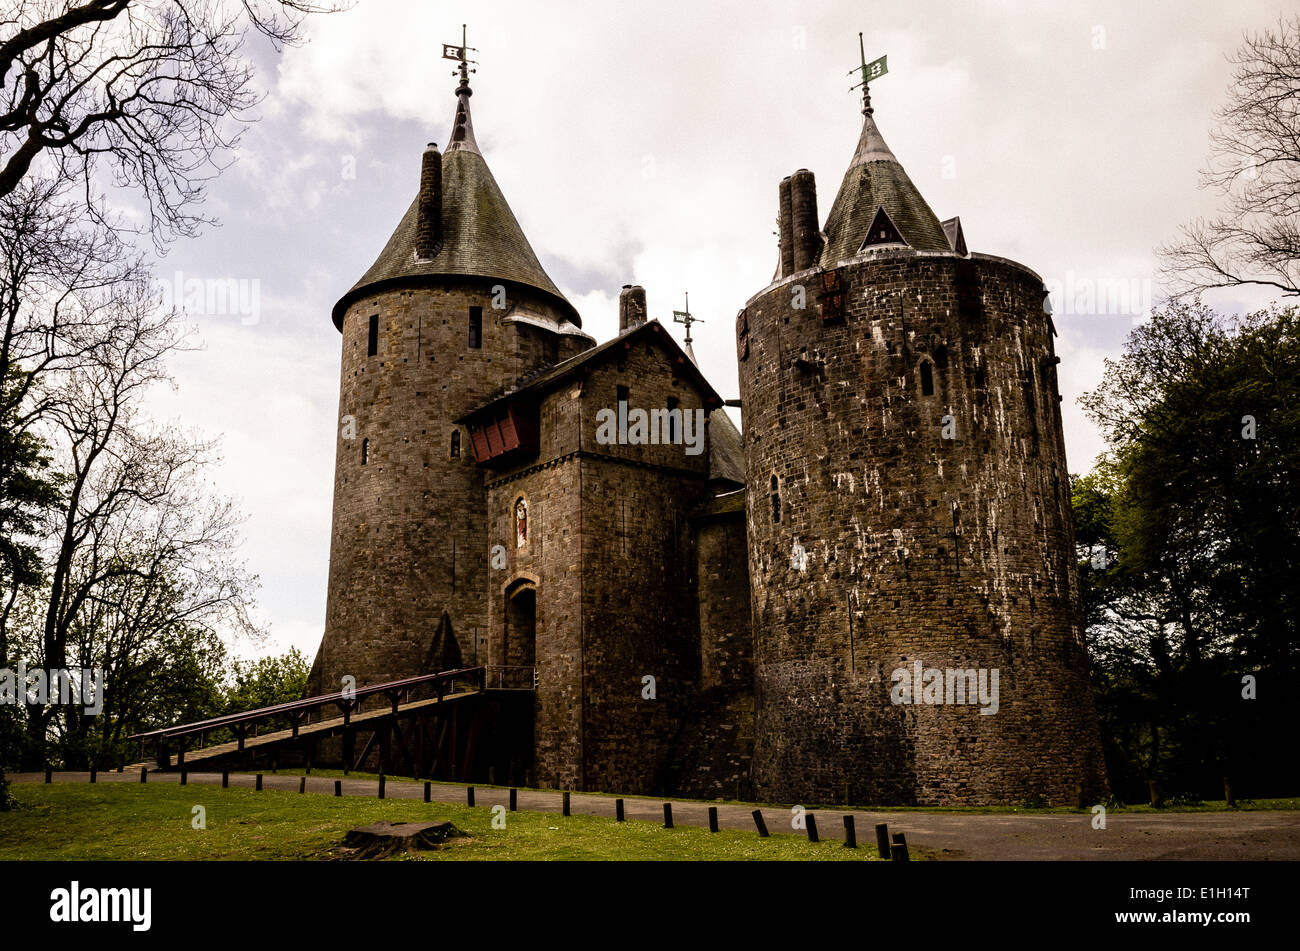 Castell Coch Or The Red Castle Is A 19th Century Gothic Revival Built On Remains Of Genuine 13th Fort